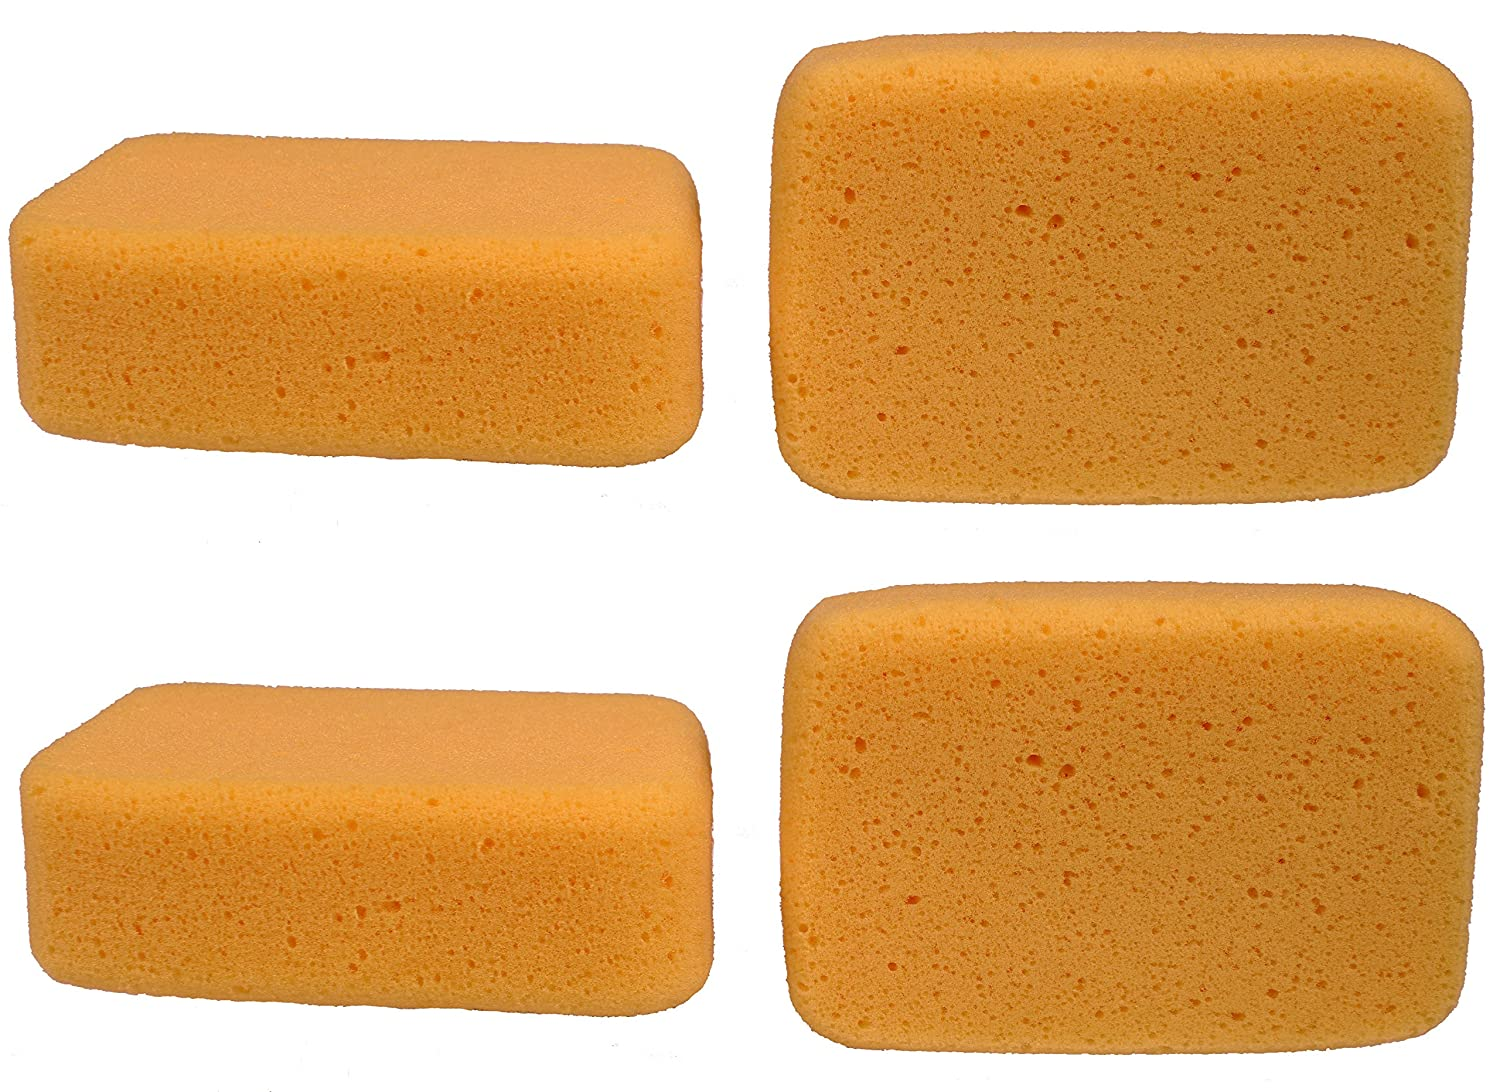 Creative Hobbies Value Pack of 4 Sponges for Painting, Crafts, Grout, Cleaning & More, Synthetic Silk Sponges, BIG 7.5 inch x 5 inch x 2 inch thick 505